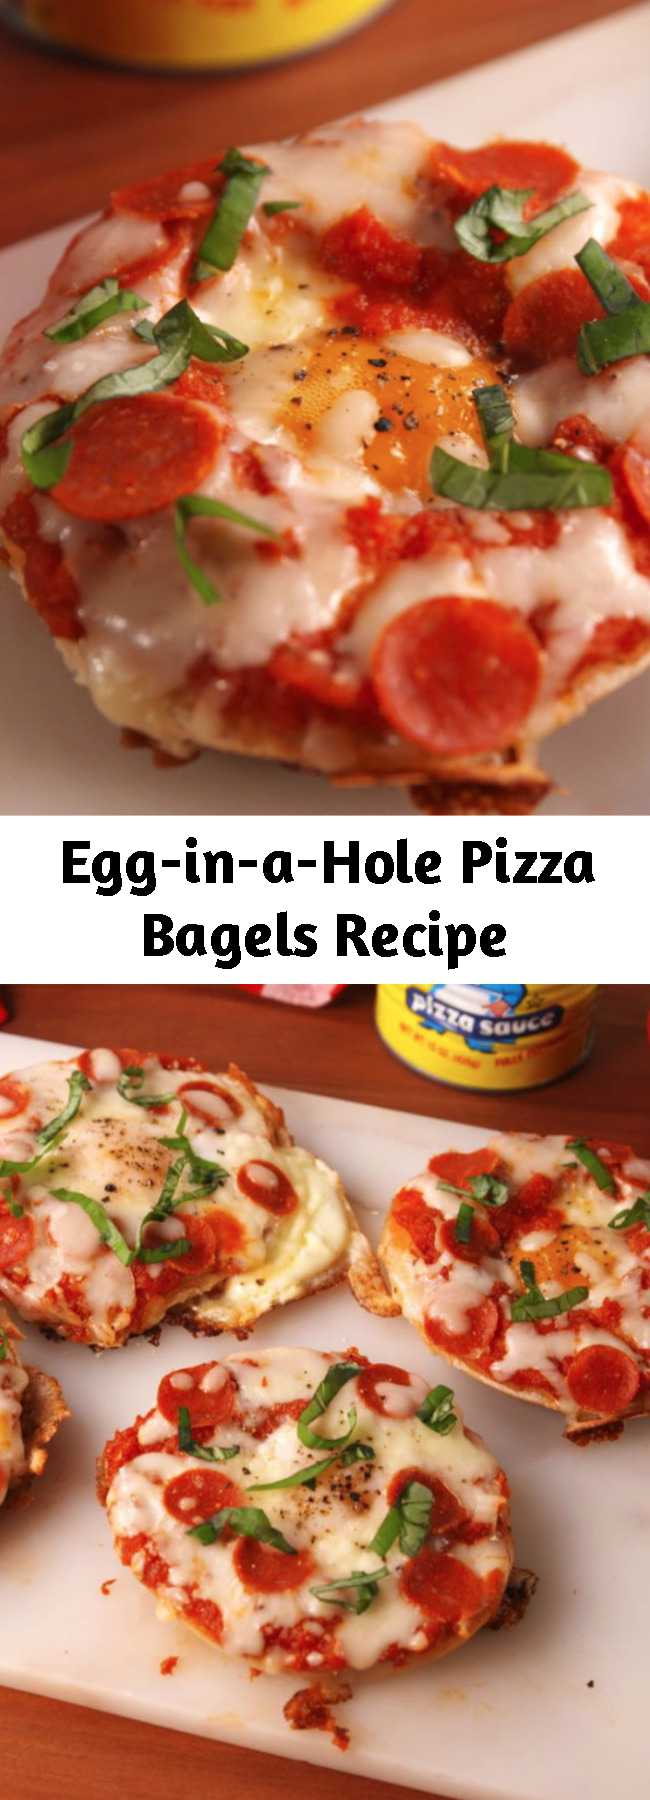 Egg-in-a-Hole Pizza Bagels Recipe - We didn't think it was possible, but pizza bagels actually just got better.